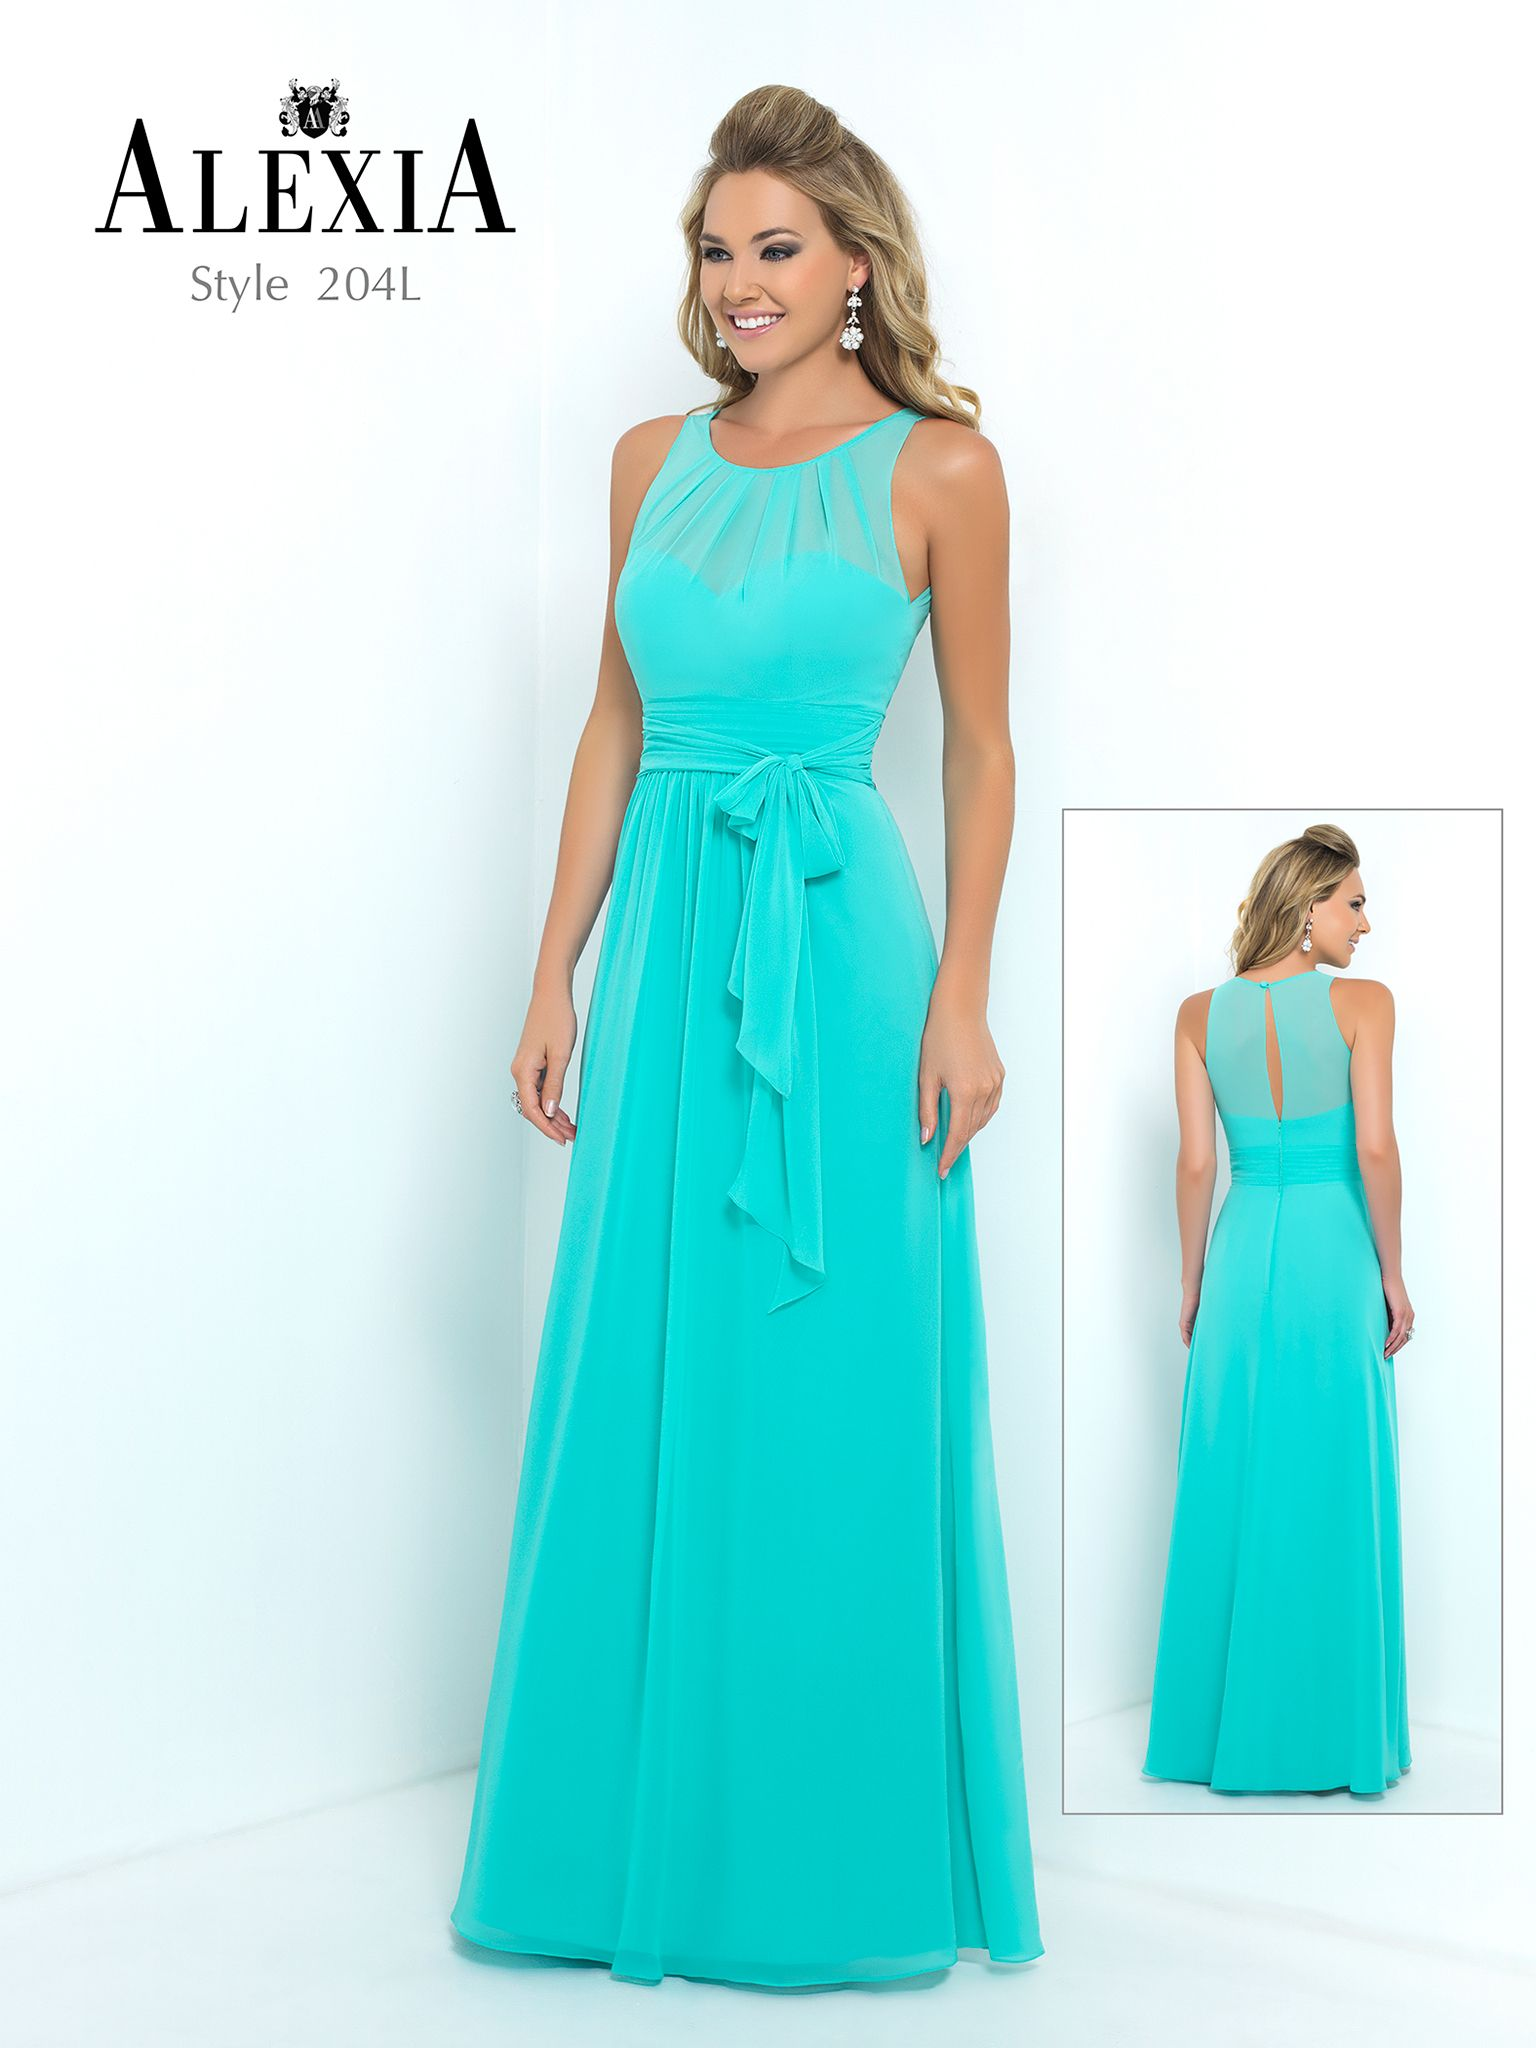 204L from Alexia Designs Bridesmaid | bridesmaid dresses | Pinterest ...